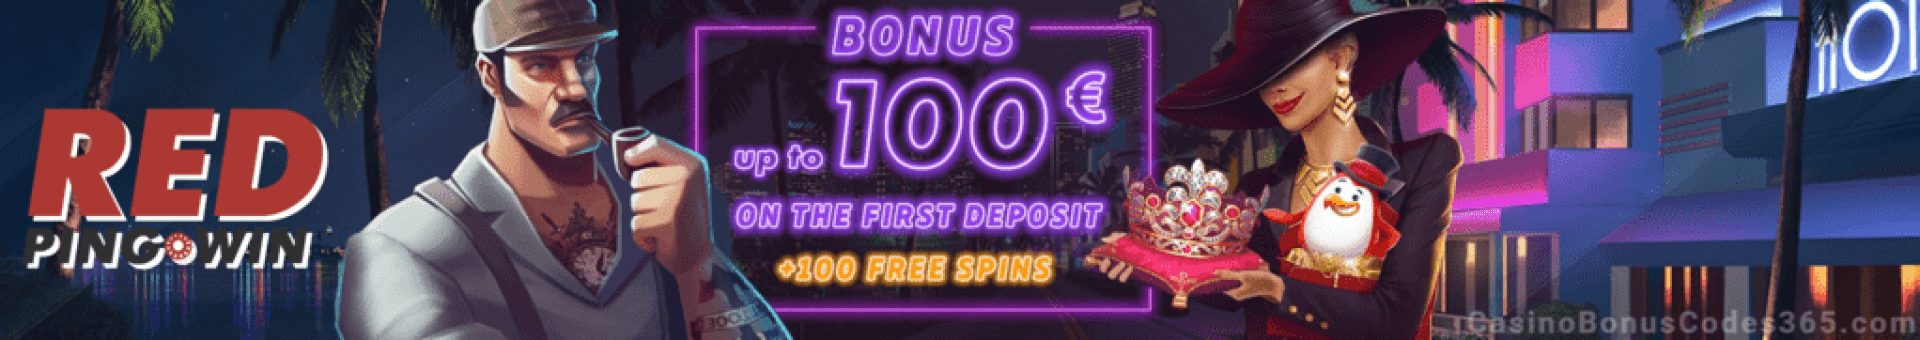 RED PingWin Casino $100 Welcome Bonus plus 100 FREE Spins